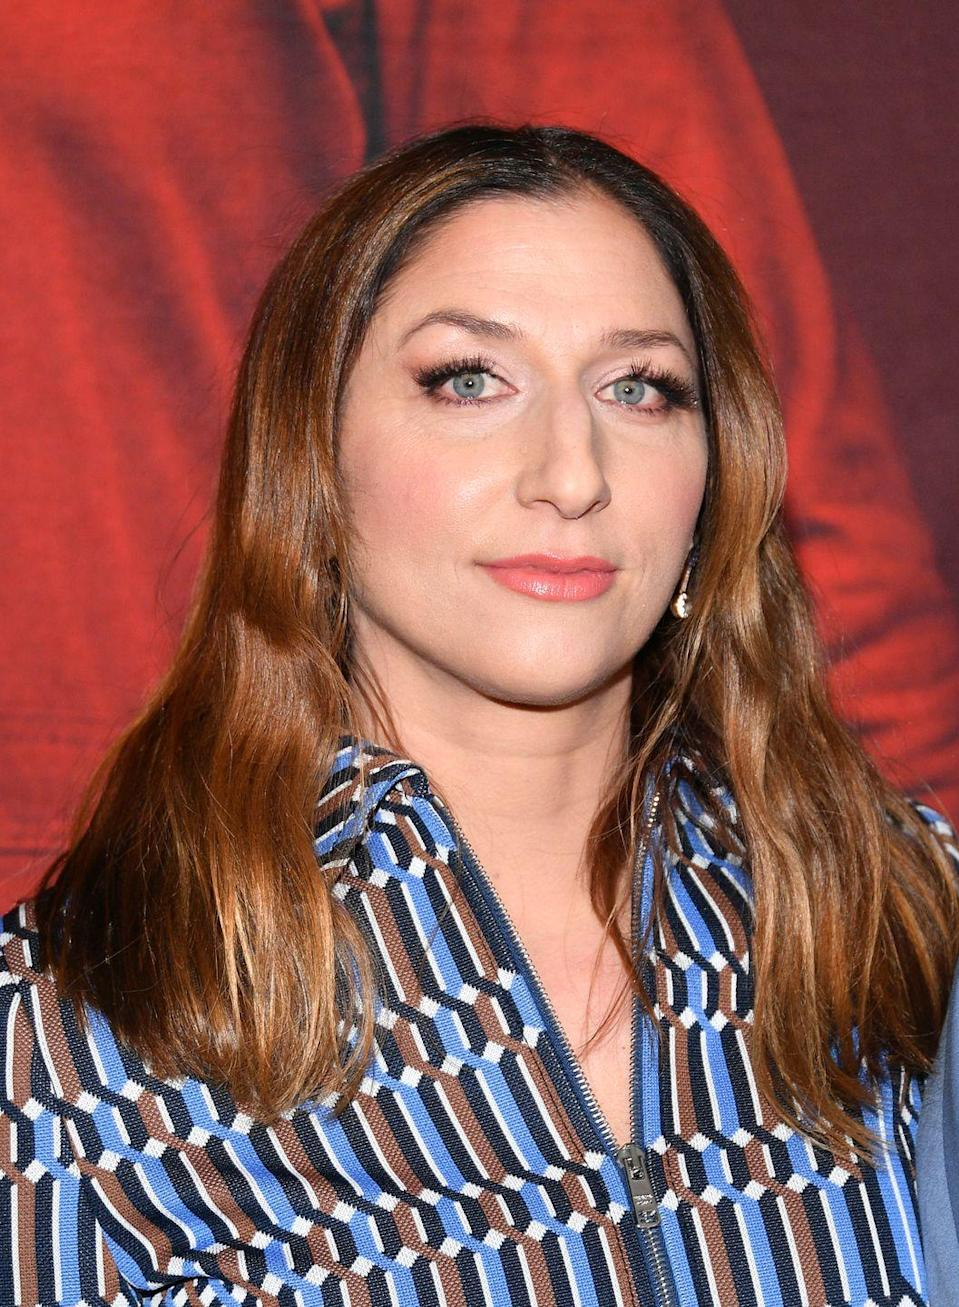 """<p>We aren't joking when we tell you that funny lady Chelsea Peretti doesn't eat frosting. The <em>Brooklyn Nine-Nine </em>star took to <a href=""""https://www.instagram.com/p/Bnu9BAxBW9n/?utm_source=ig_embed"""" rel=""""nofollow noopener"""" target=""""_blank"""" data-ylk=""""slk:Instagram"""" class=""""link rapid-noclick-resp"""">Instagram</a> to show all of us how she eats a cake—sans frosting. But why?!</p>"""